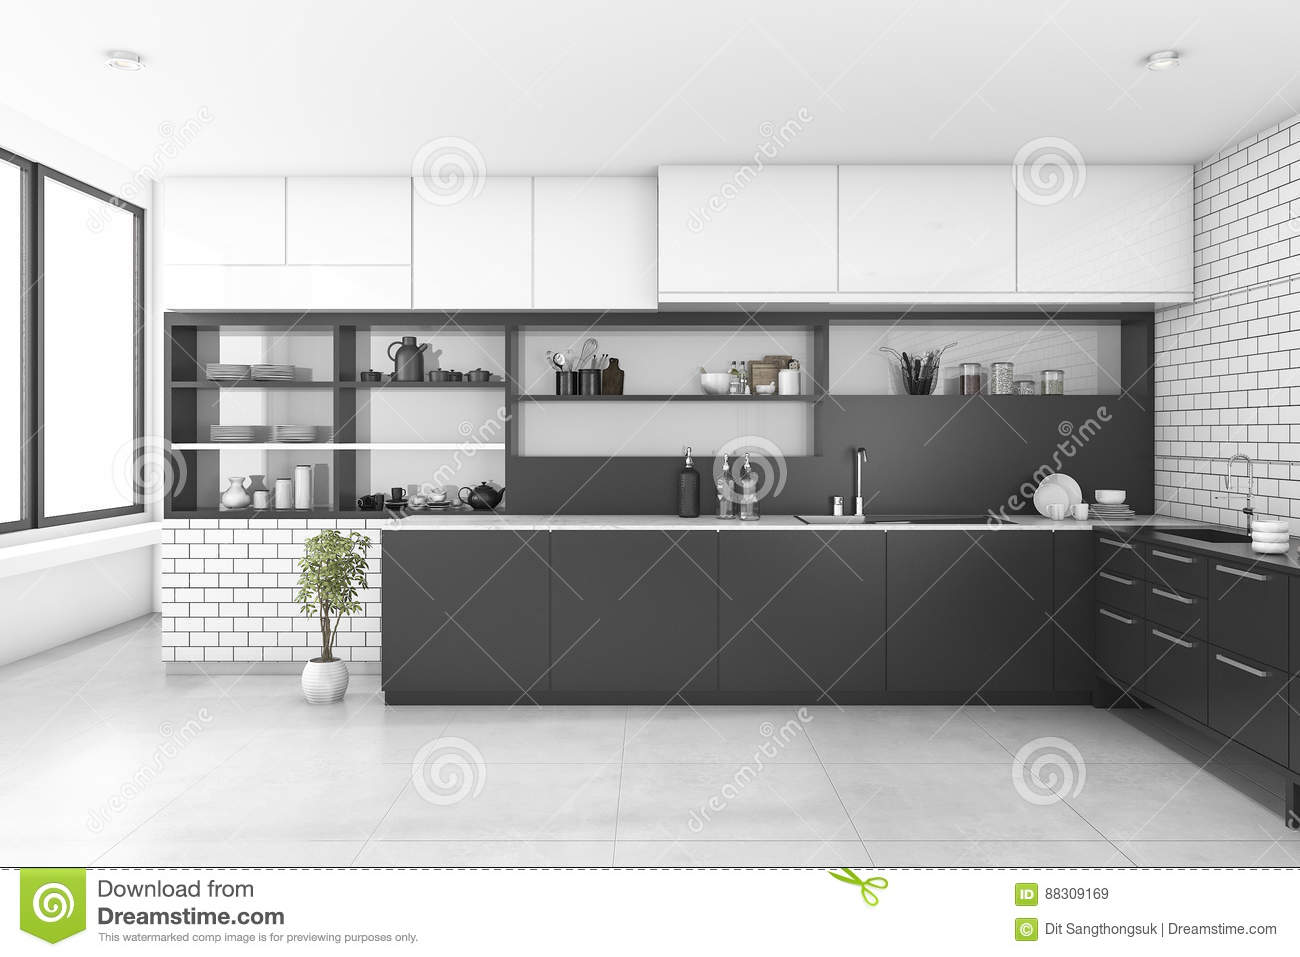 3d Rendering Black Kitchen With Brick Wall Stock Illustration